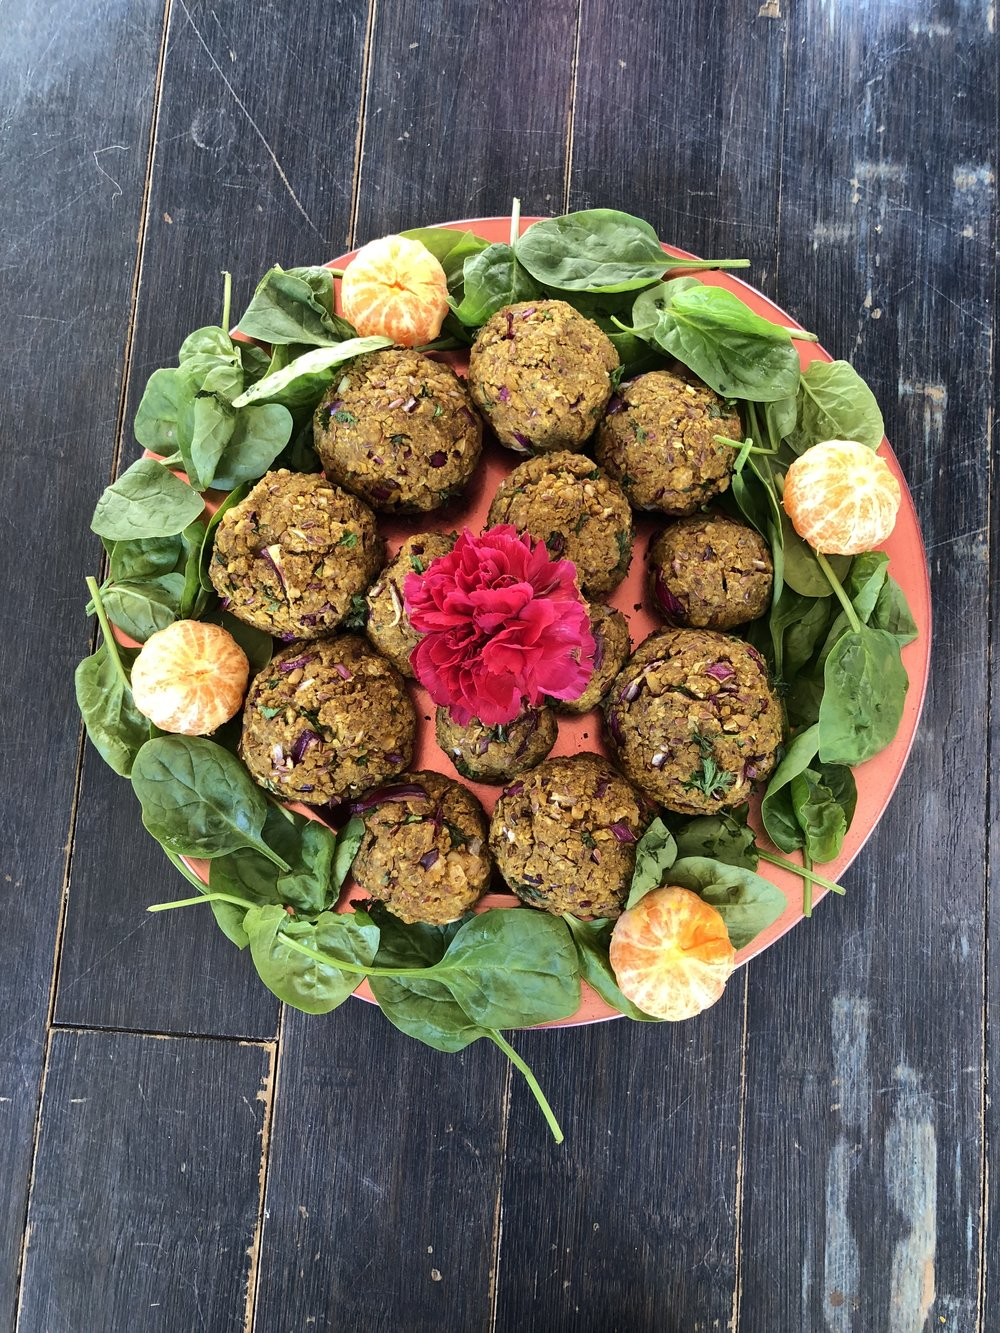 Health Benefits - Live enzymes.Packed with protein & healthy fats (flax, walnuts, chickpeas & sunflower seeds, olive oil).Detoxifying agents: onions & garlicThese balls provide you with energy, are easy to digest, keep you satiated for long and don't make you feel bloated.